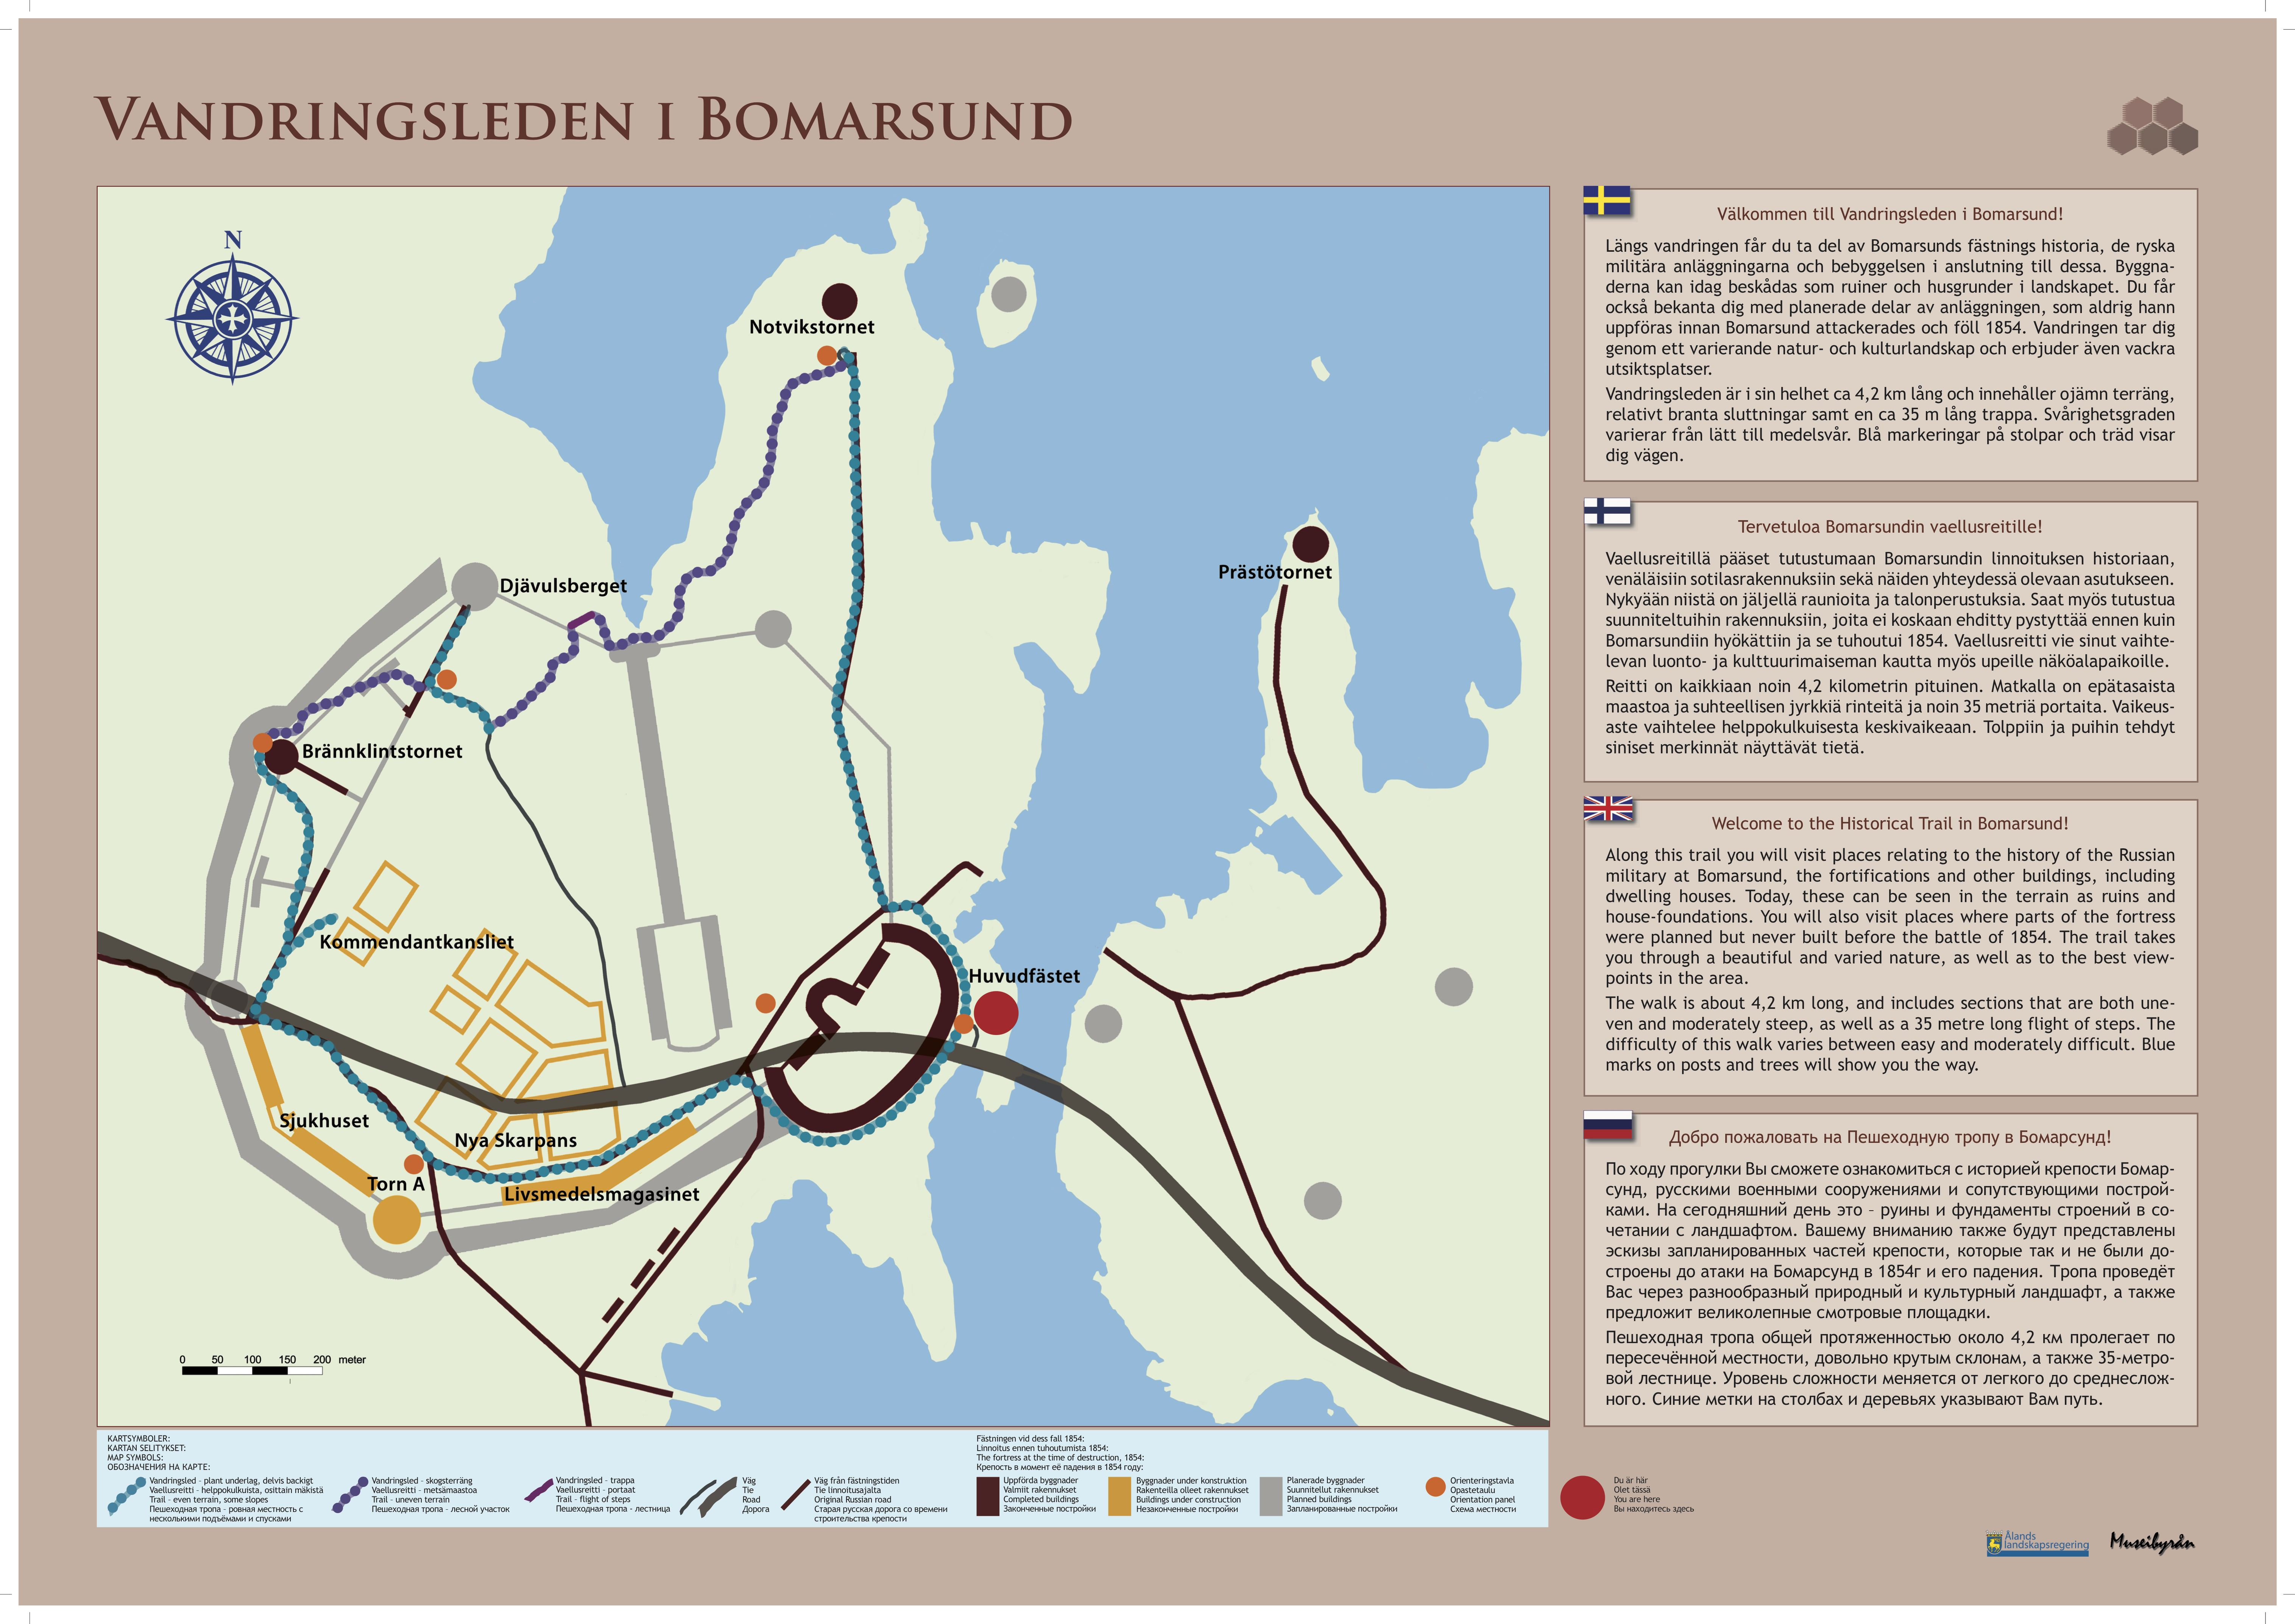 The Historical Trail in Bomarsund